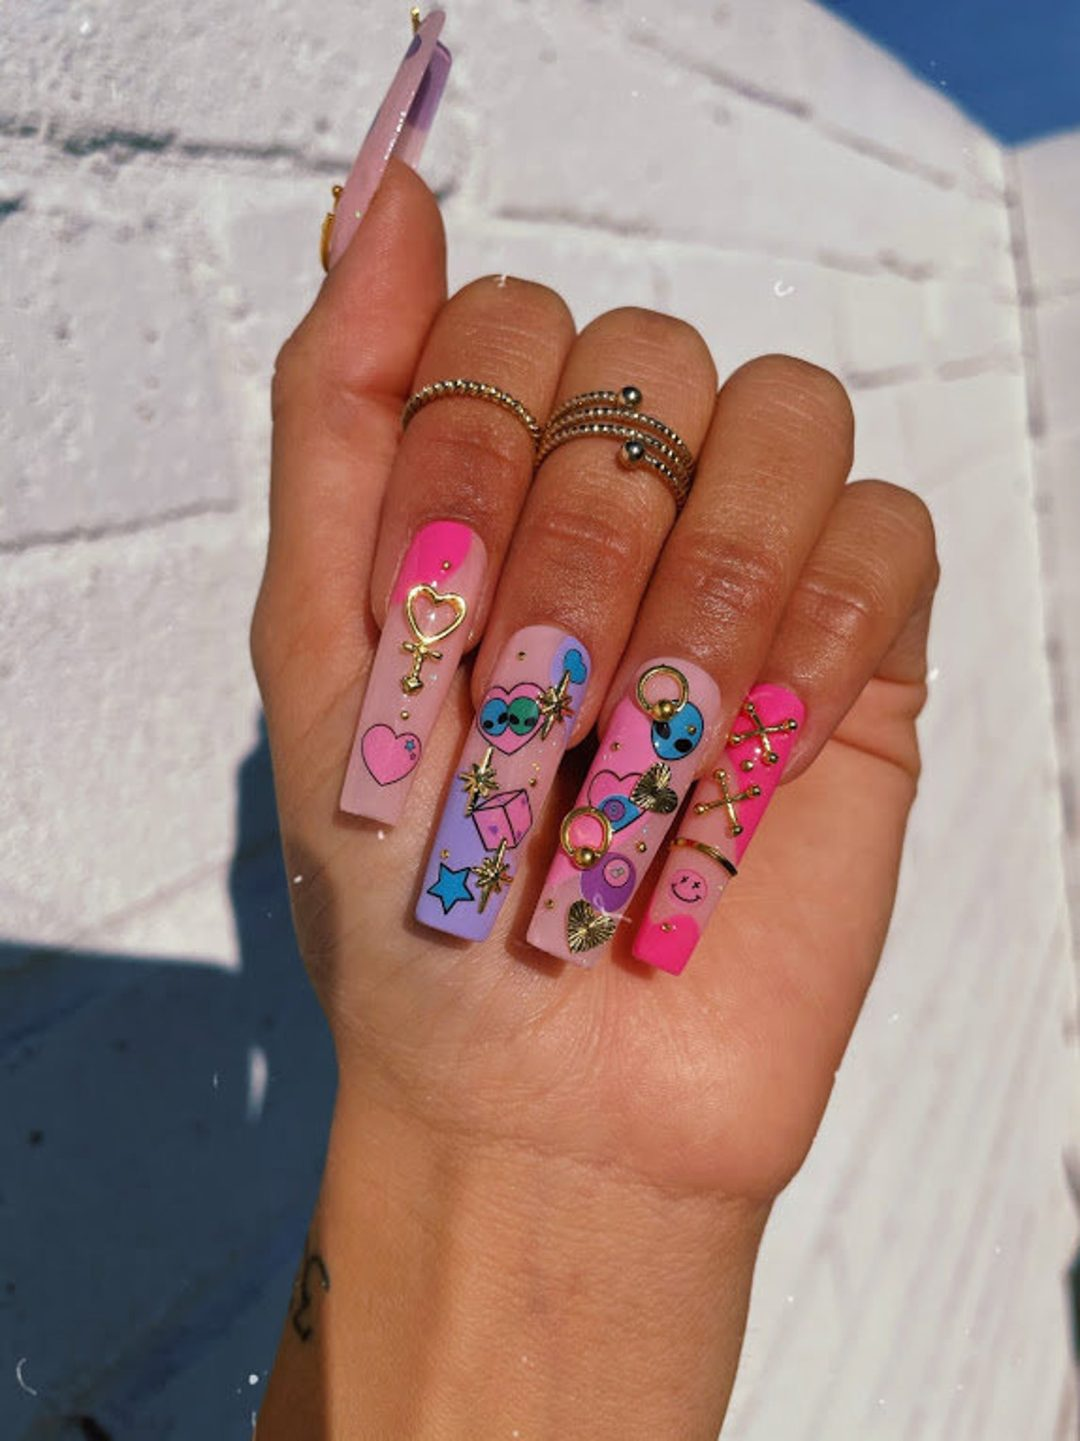 Cartoonish heart nails with aliens and gold decals